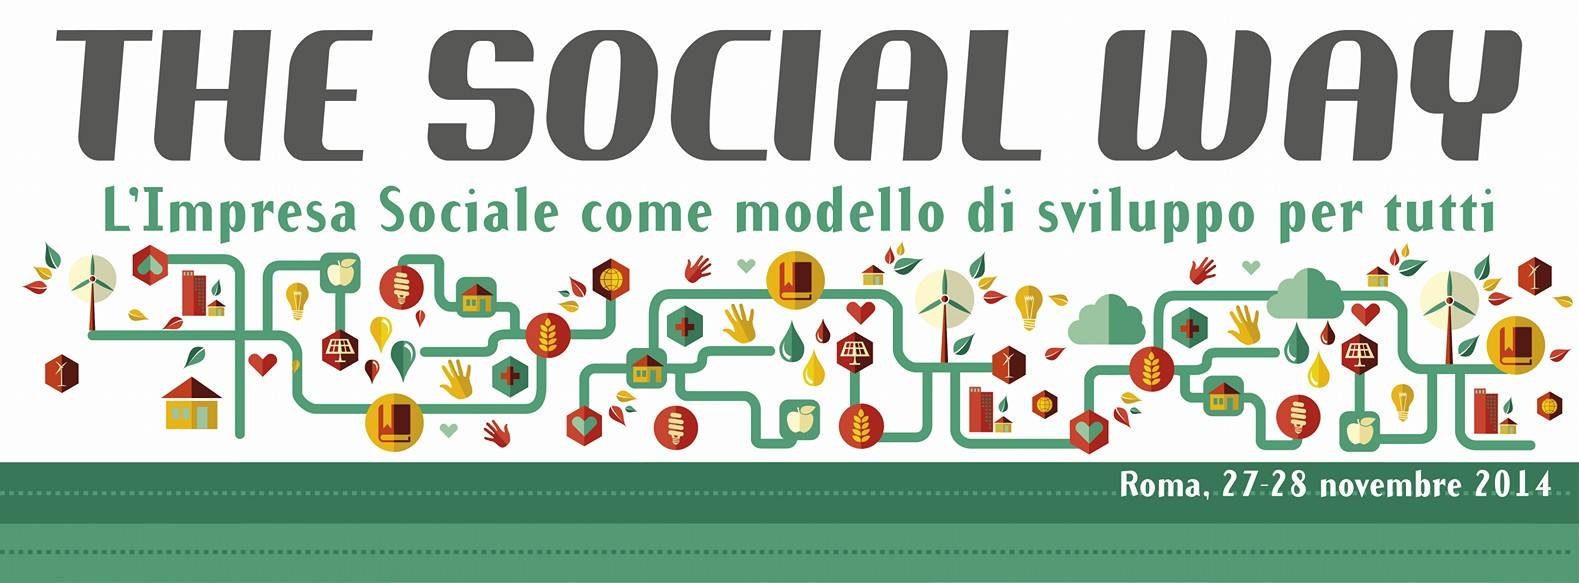 Gruppo Cooperativo CGM - the Social Way XII convention